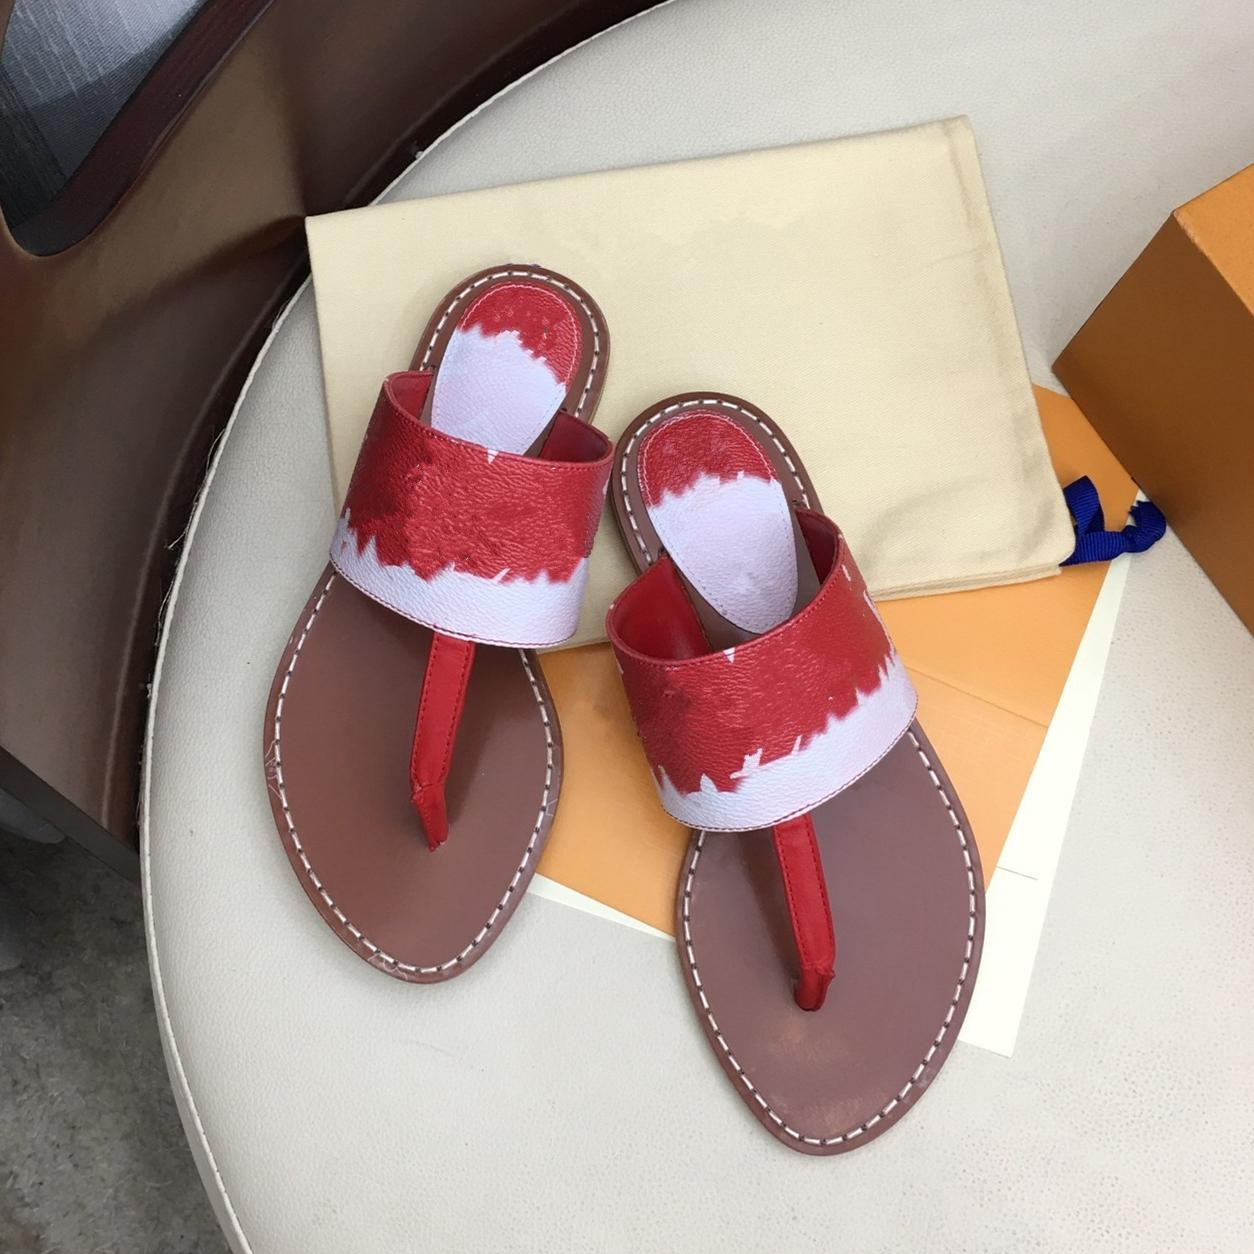 New Colorful Patent Canvas Leather Flat Thong Mule Slides Ladies Sandals Red Pink Blue Size 34 To 42